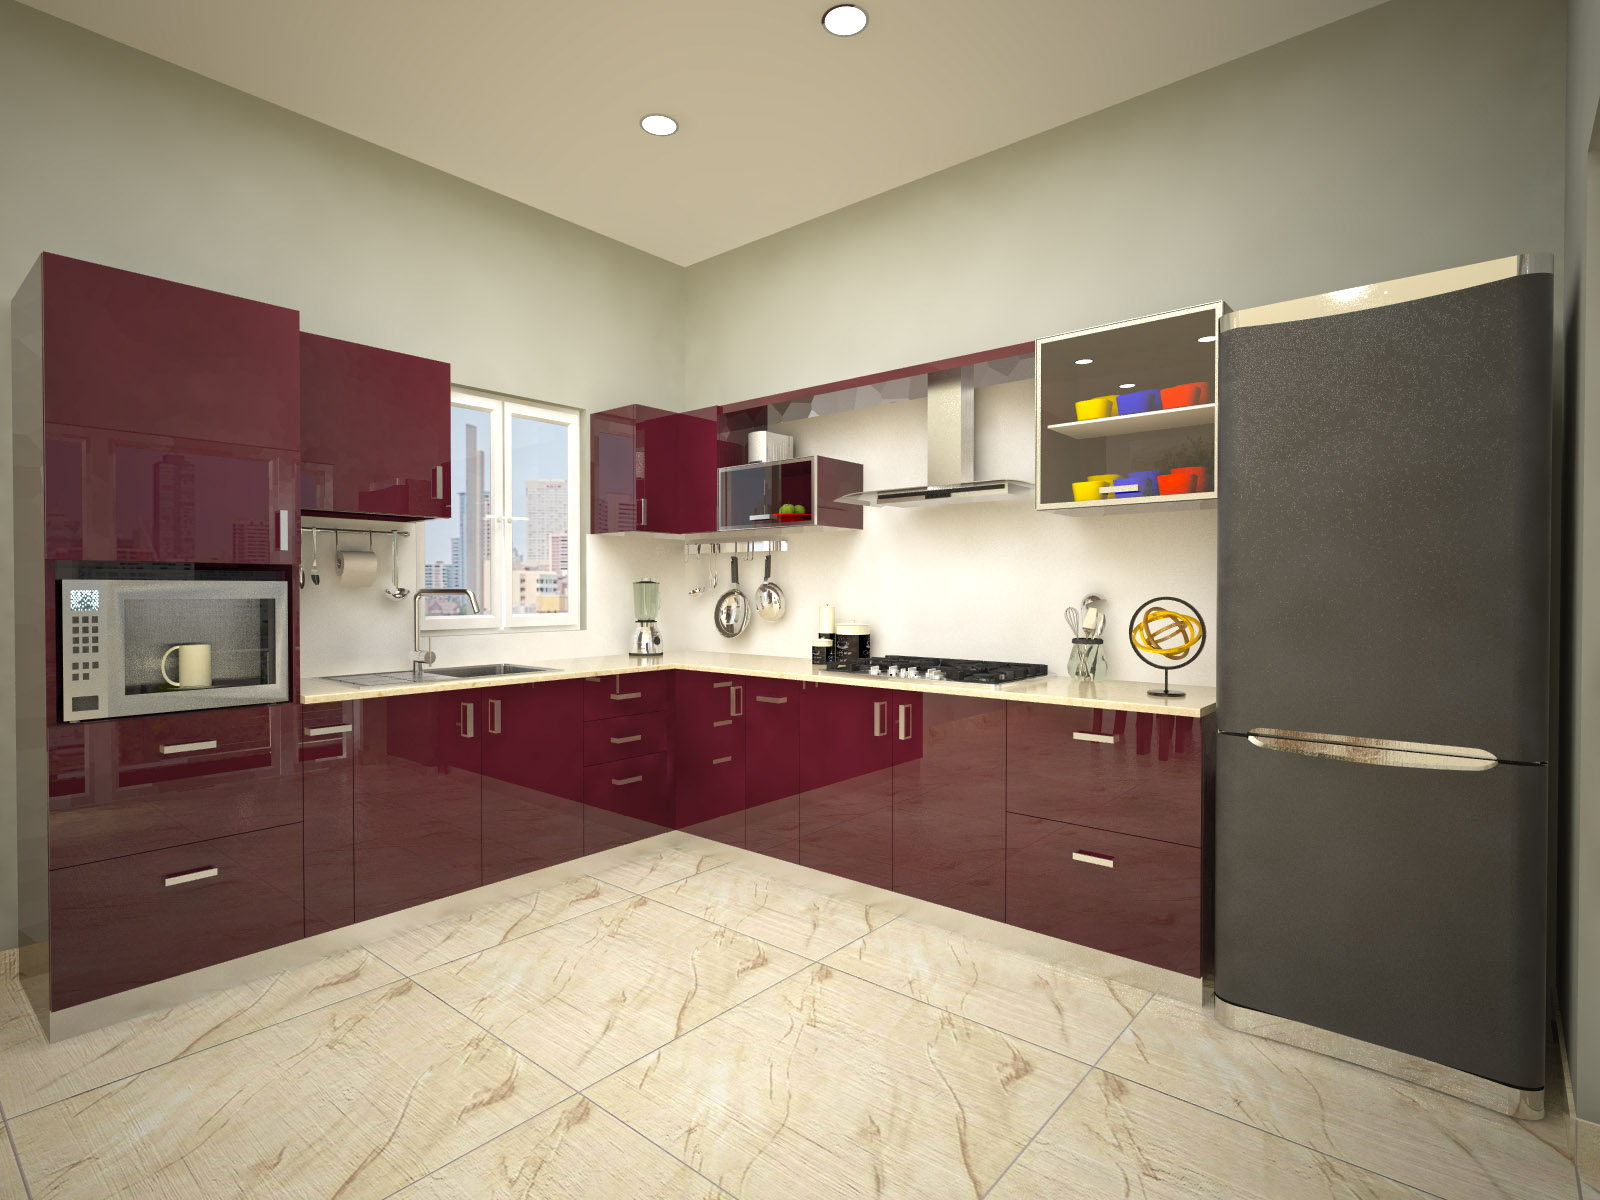 Homelane munnar l shaped modular kitchen autentic wenge for Modular kitchen designs for 10 x 8